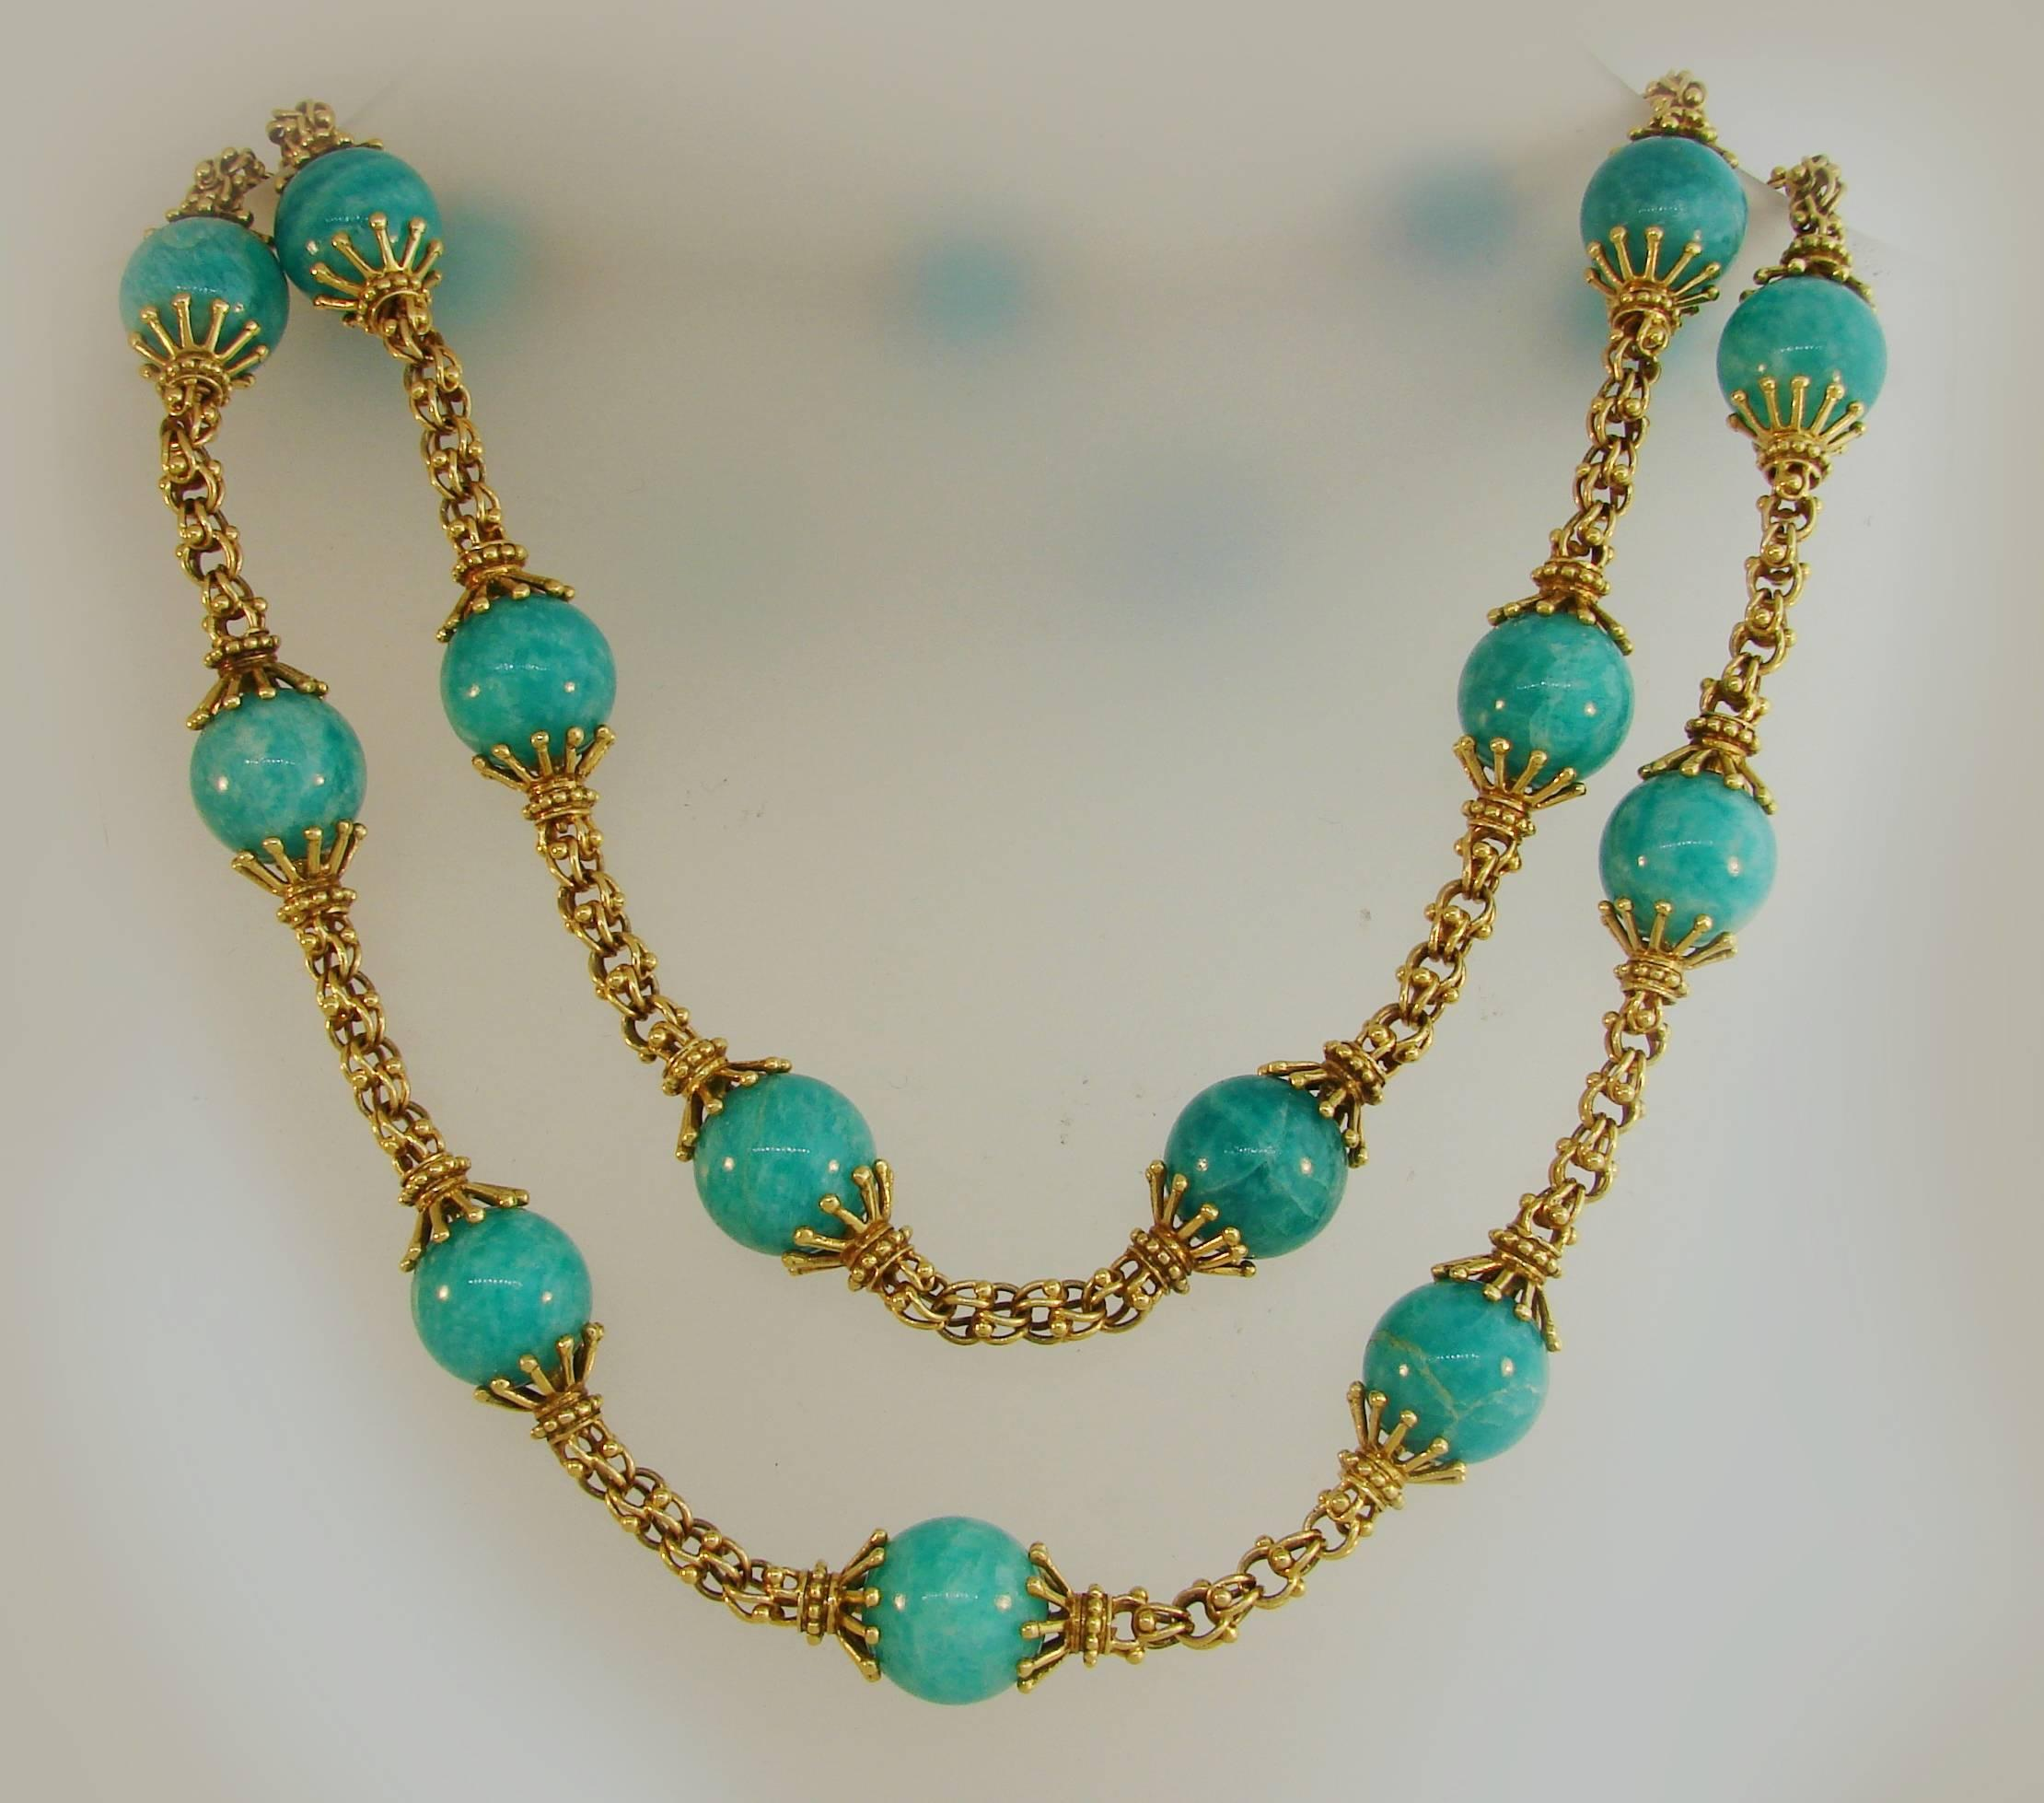 necklace silk amazonite finola etta shop turquoise jewelry